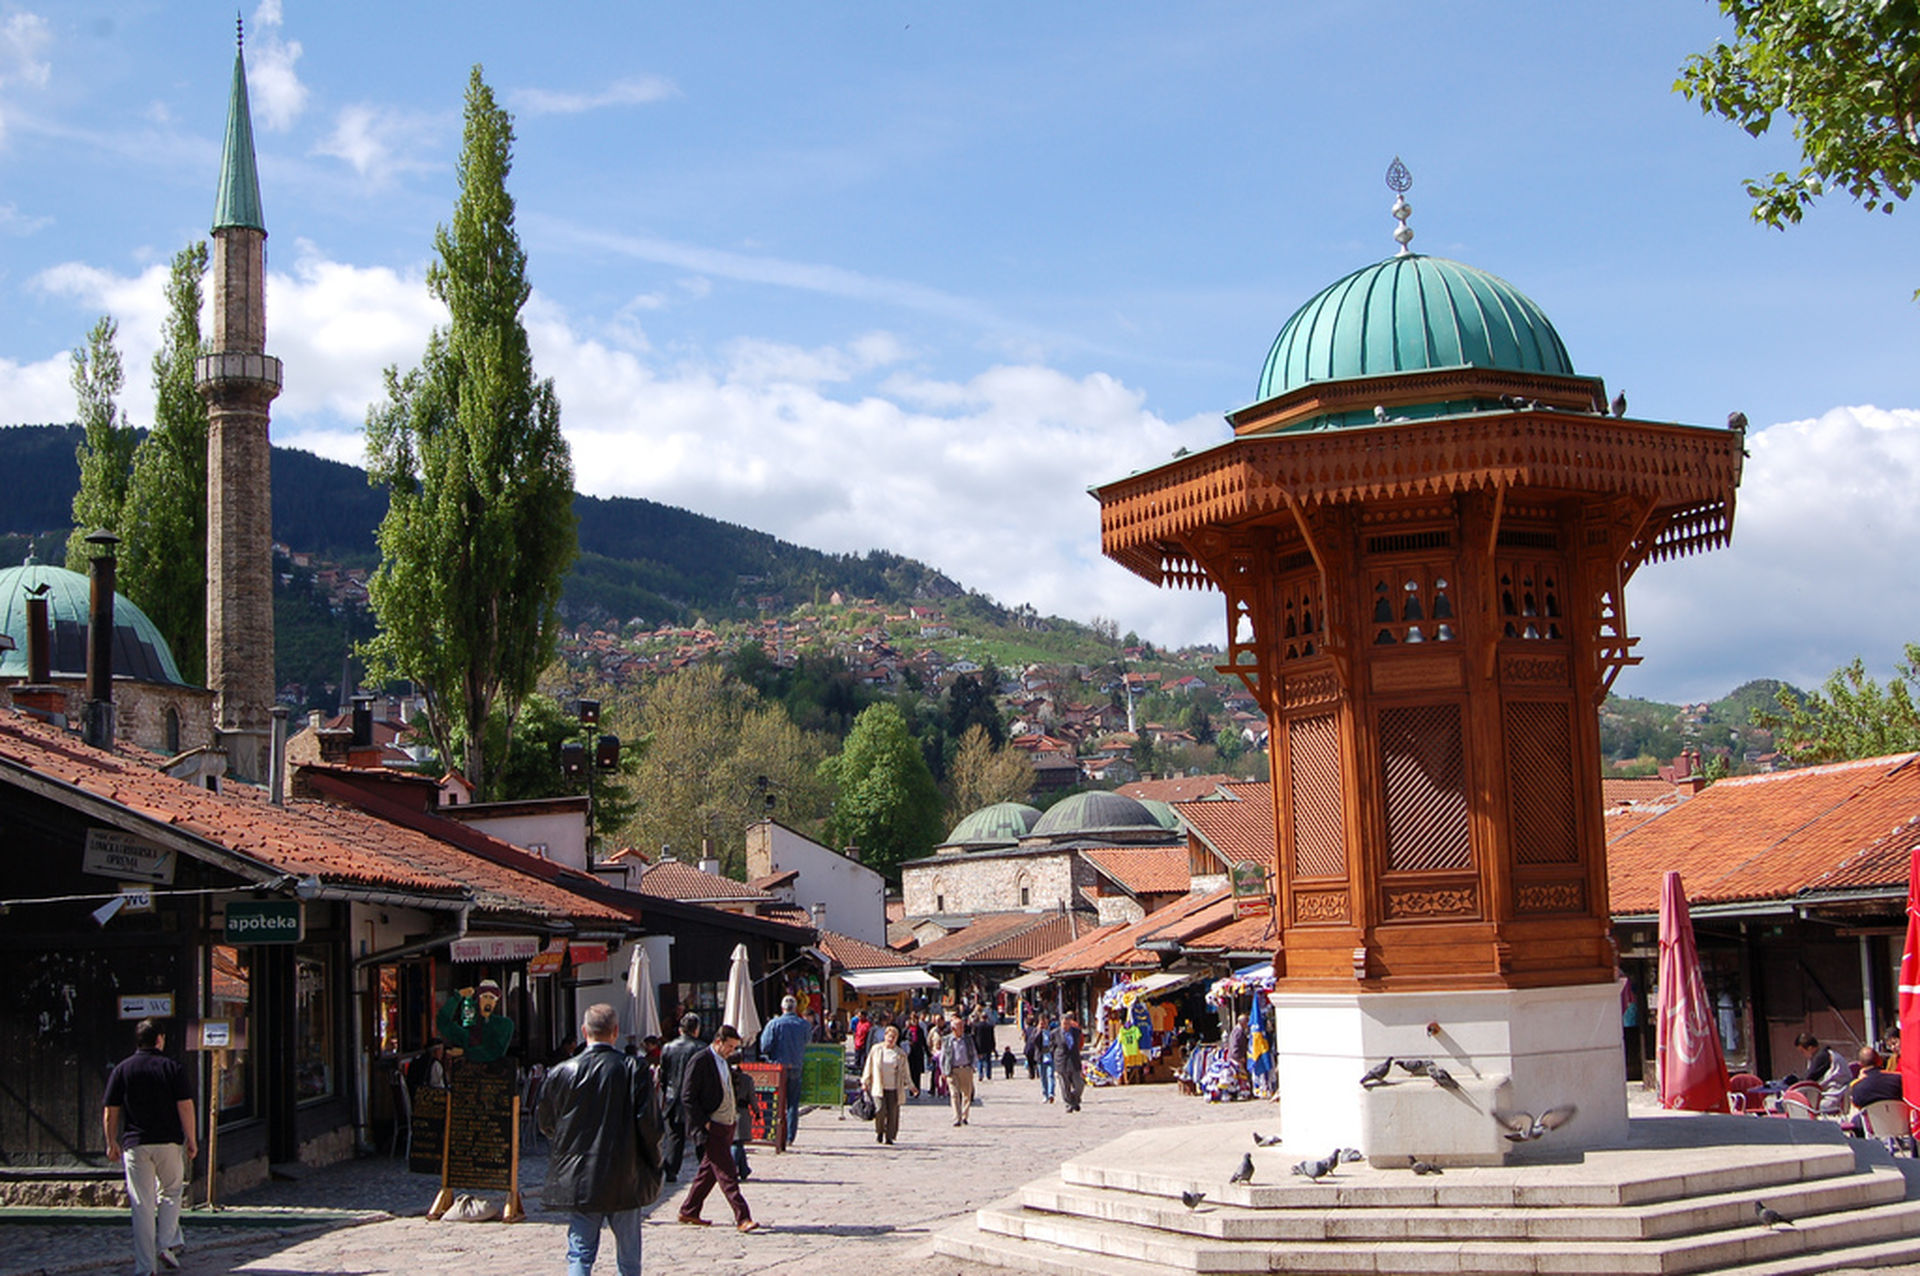 OPEN CALL FOR 2 PARTICIPANTS FOR STUDY VISIT IN SARAJEVO, B&H